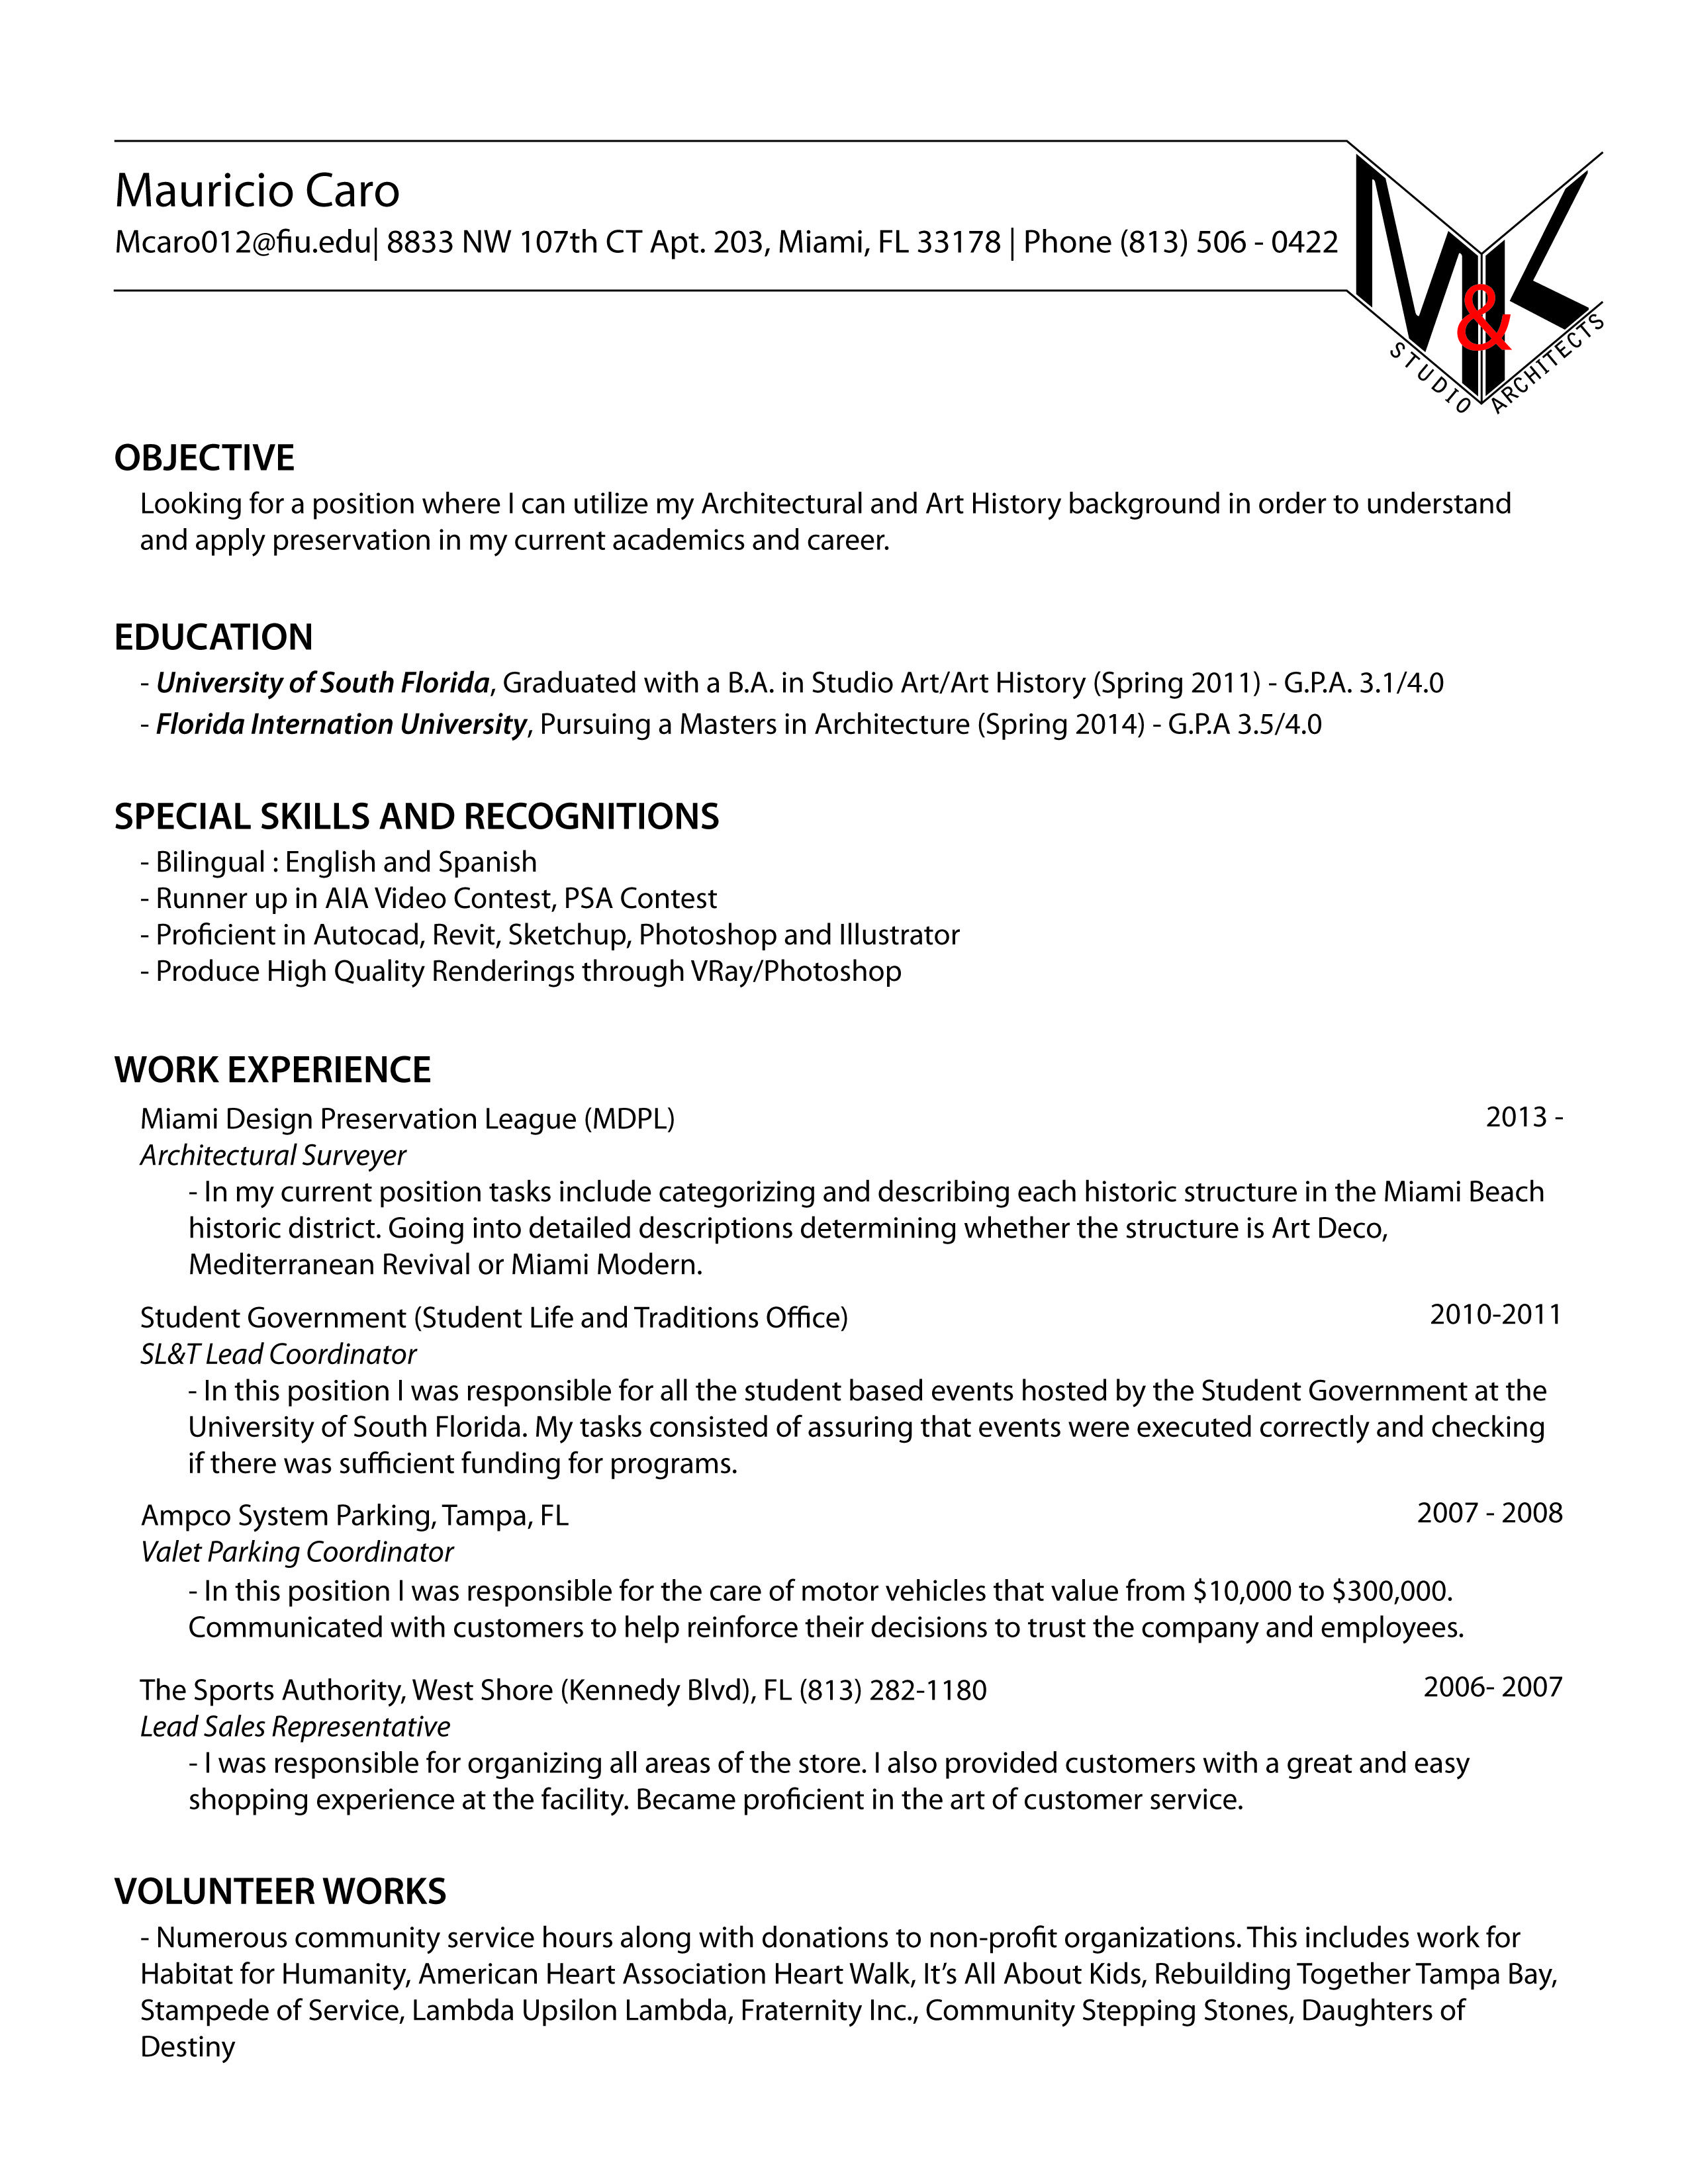 Fall 2013 Curriculum Vitae History Background Curriculum Vitae Curriculum